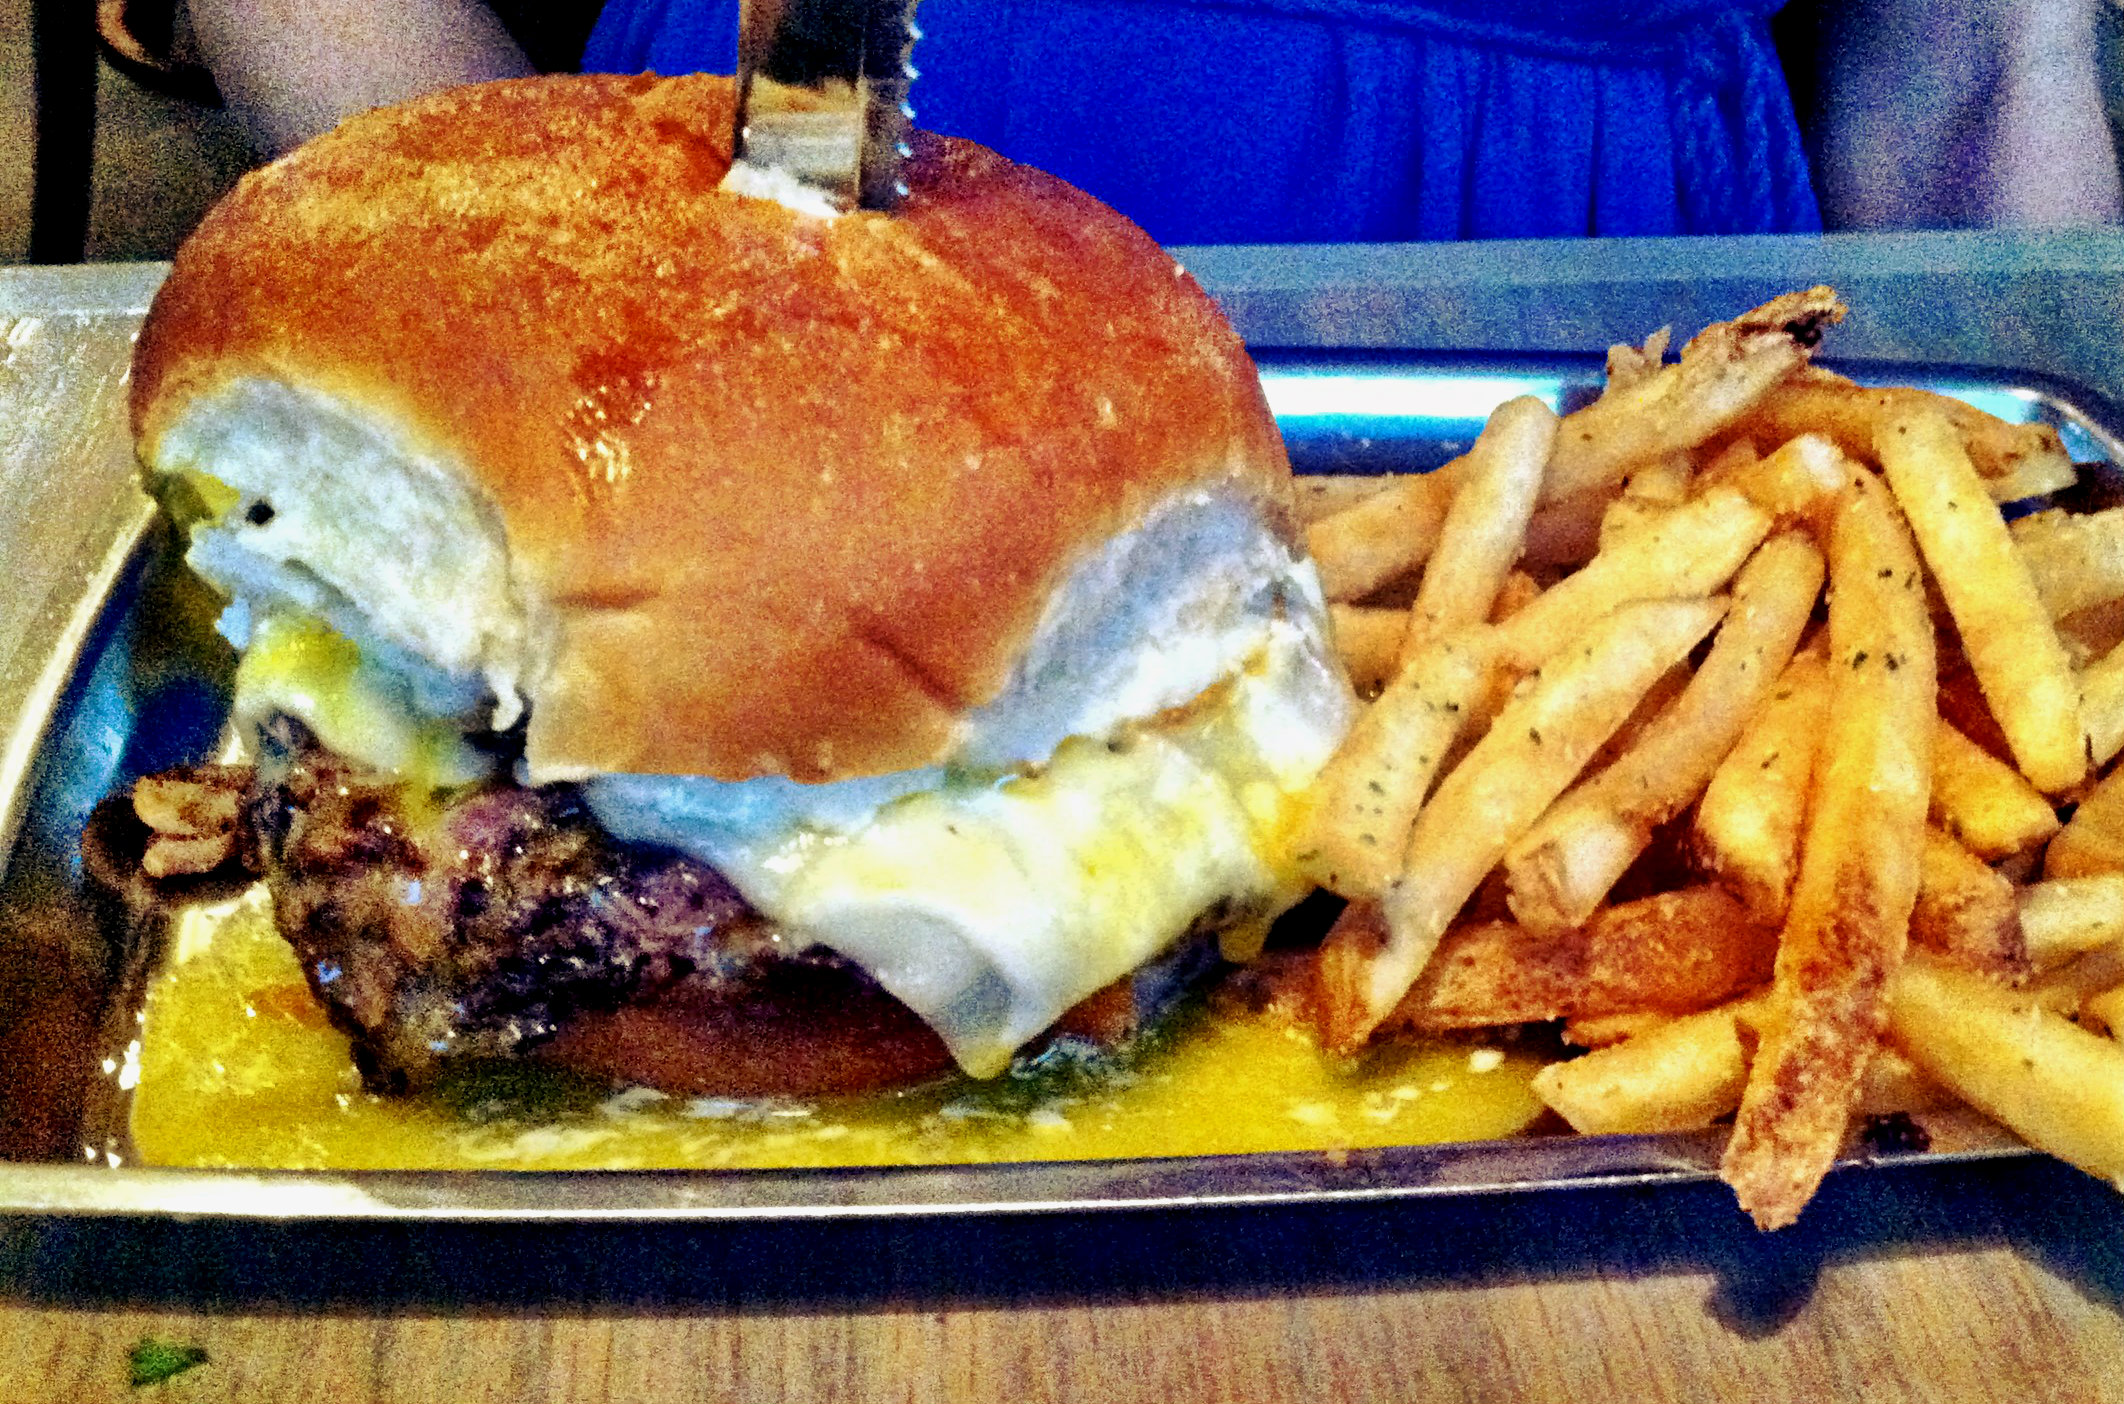 Fat Patties' Over Easy burger. With fried egg, Swiss cheese and onions & mushrooms.